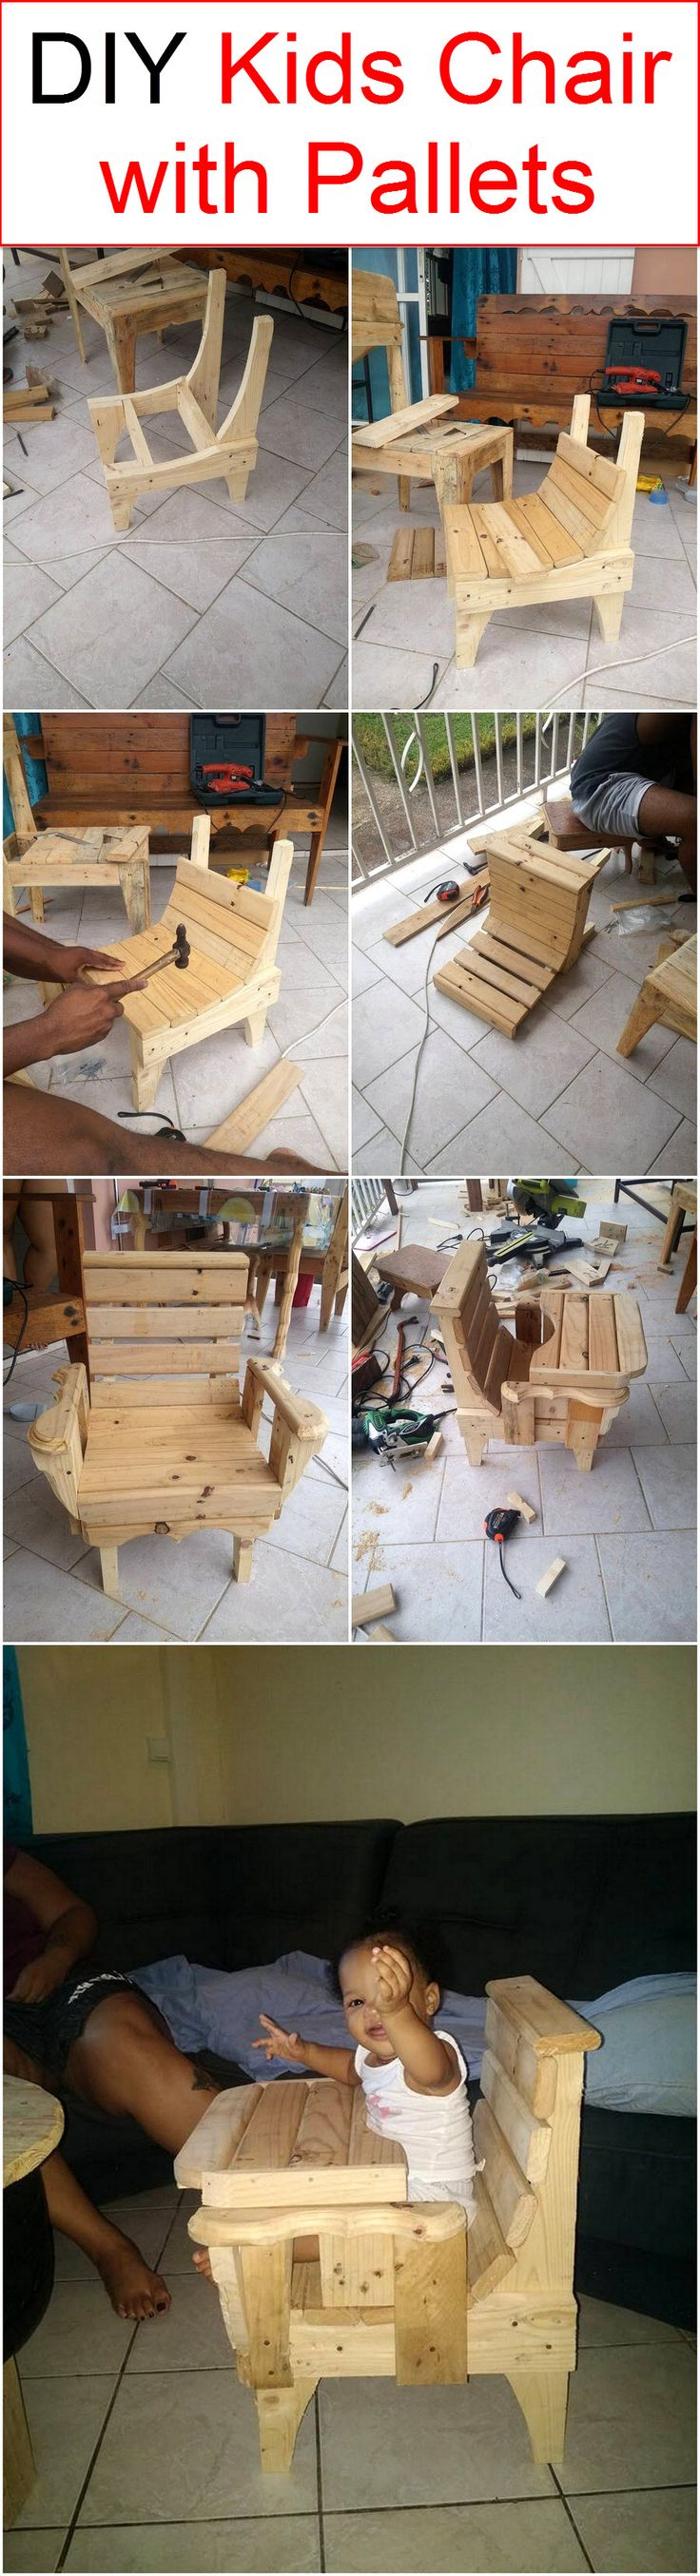 Wooden transport pallets have become increasingly popular for diy - While Working On These Generic Pallet Wood Repurposed Furniture Ideas I Really Had A Feeling